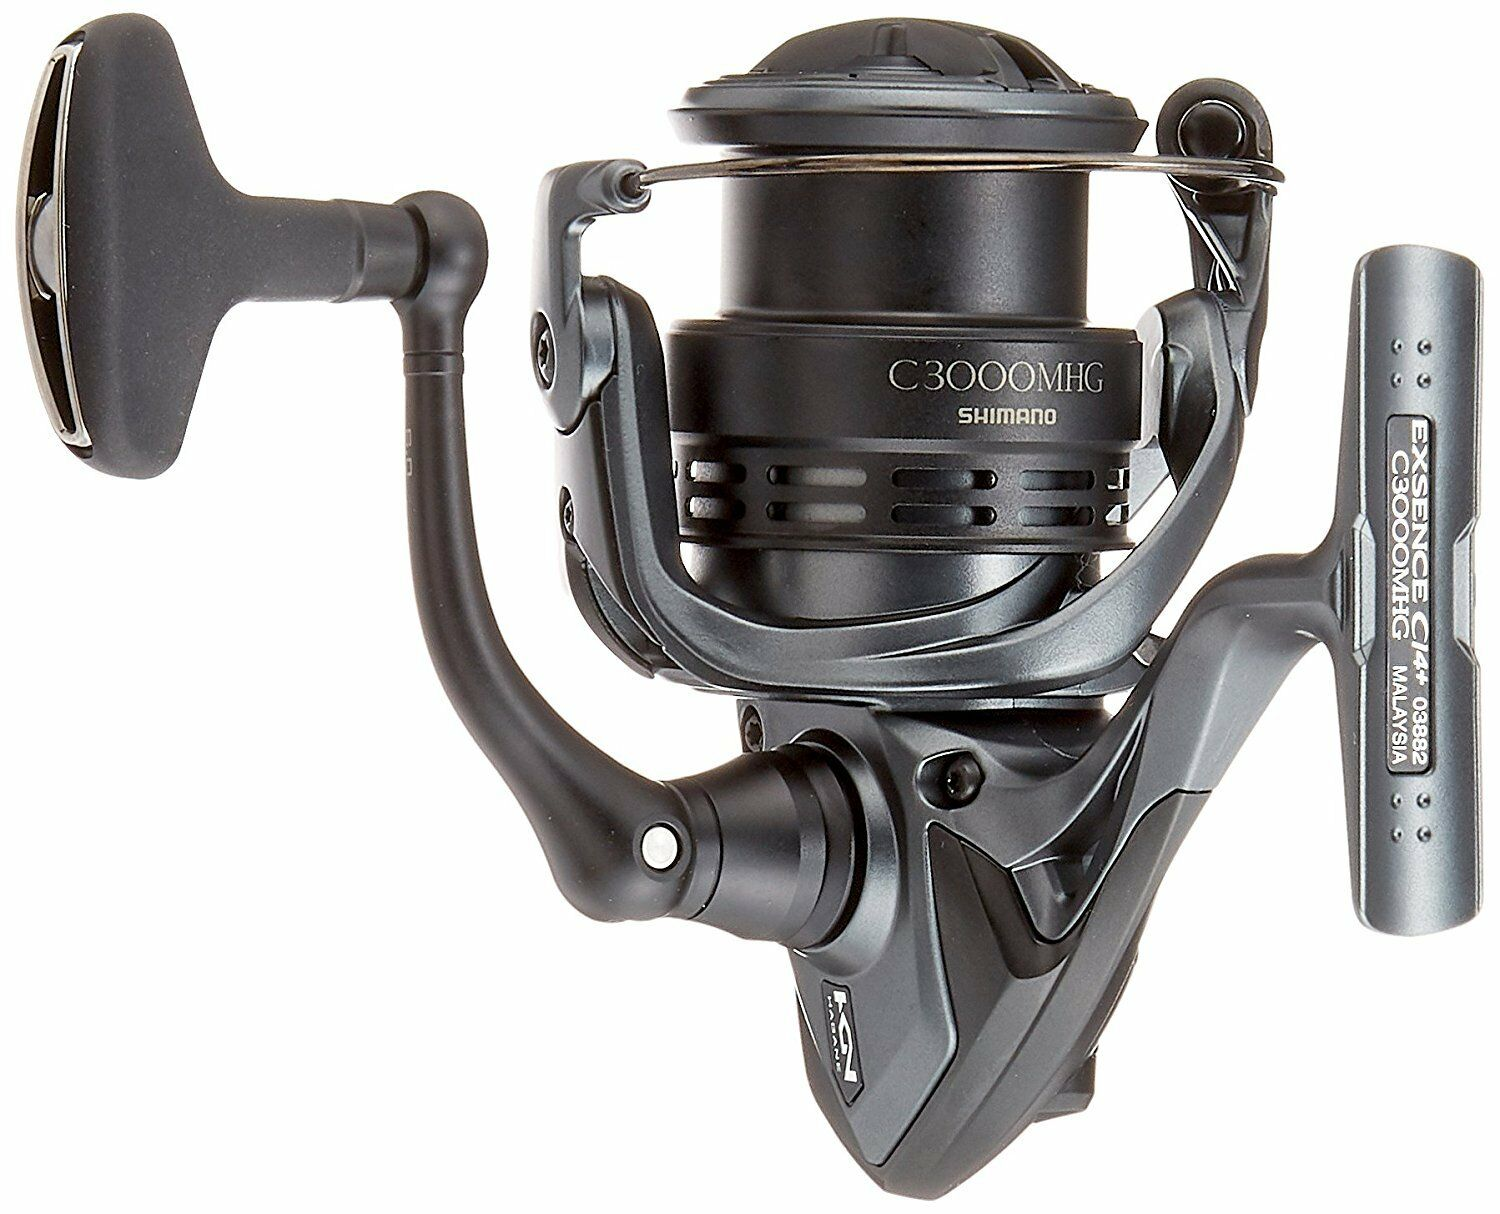 SHIMANO SPINNING + REEL SEA BASS 18 EXCEPTION CI 4 + SPINNING C 3000 MHG BRAND NEW F/S d5b315